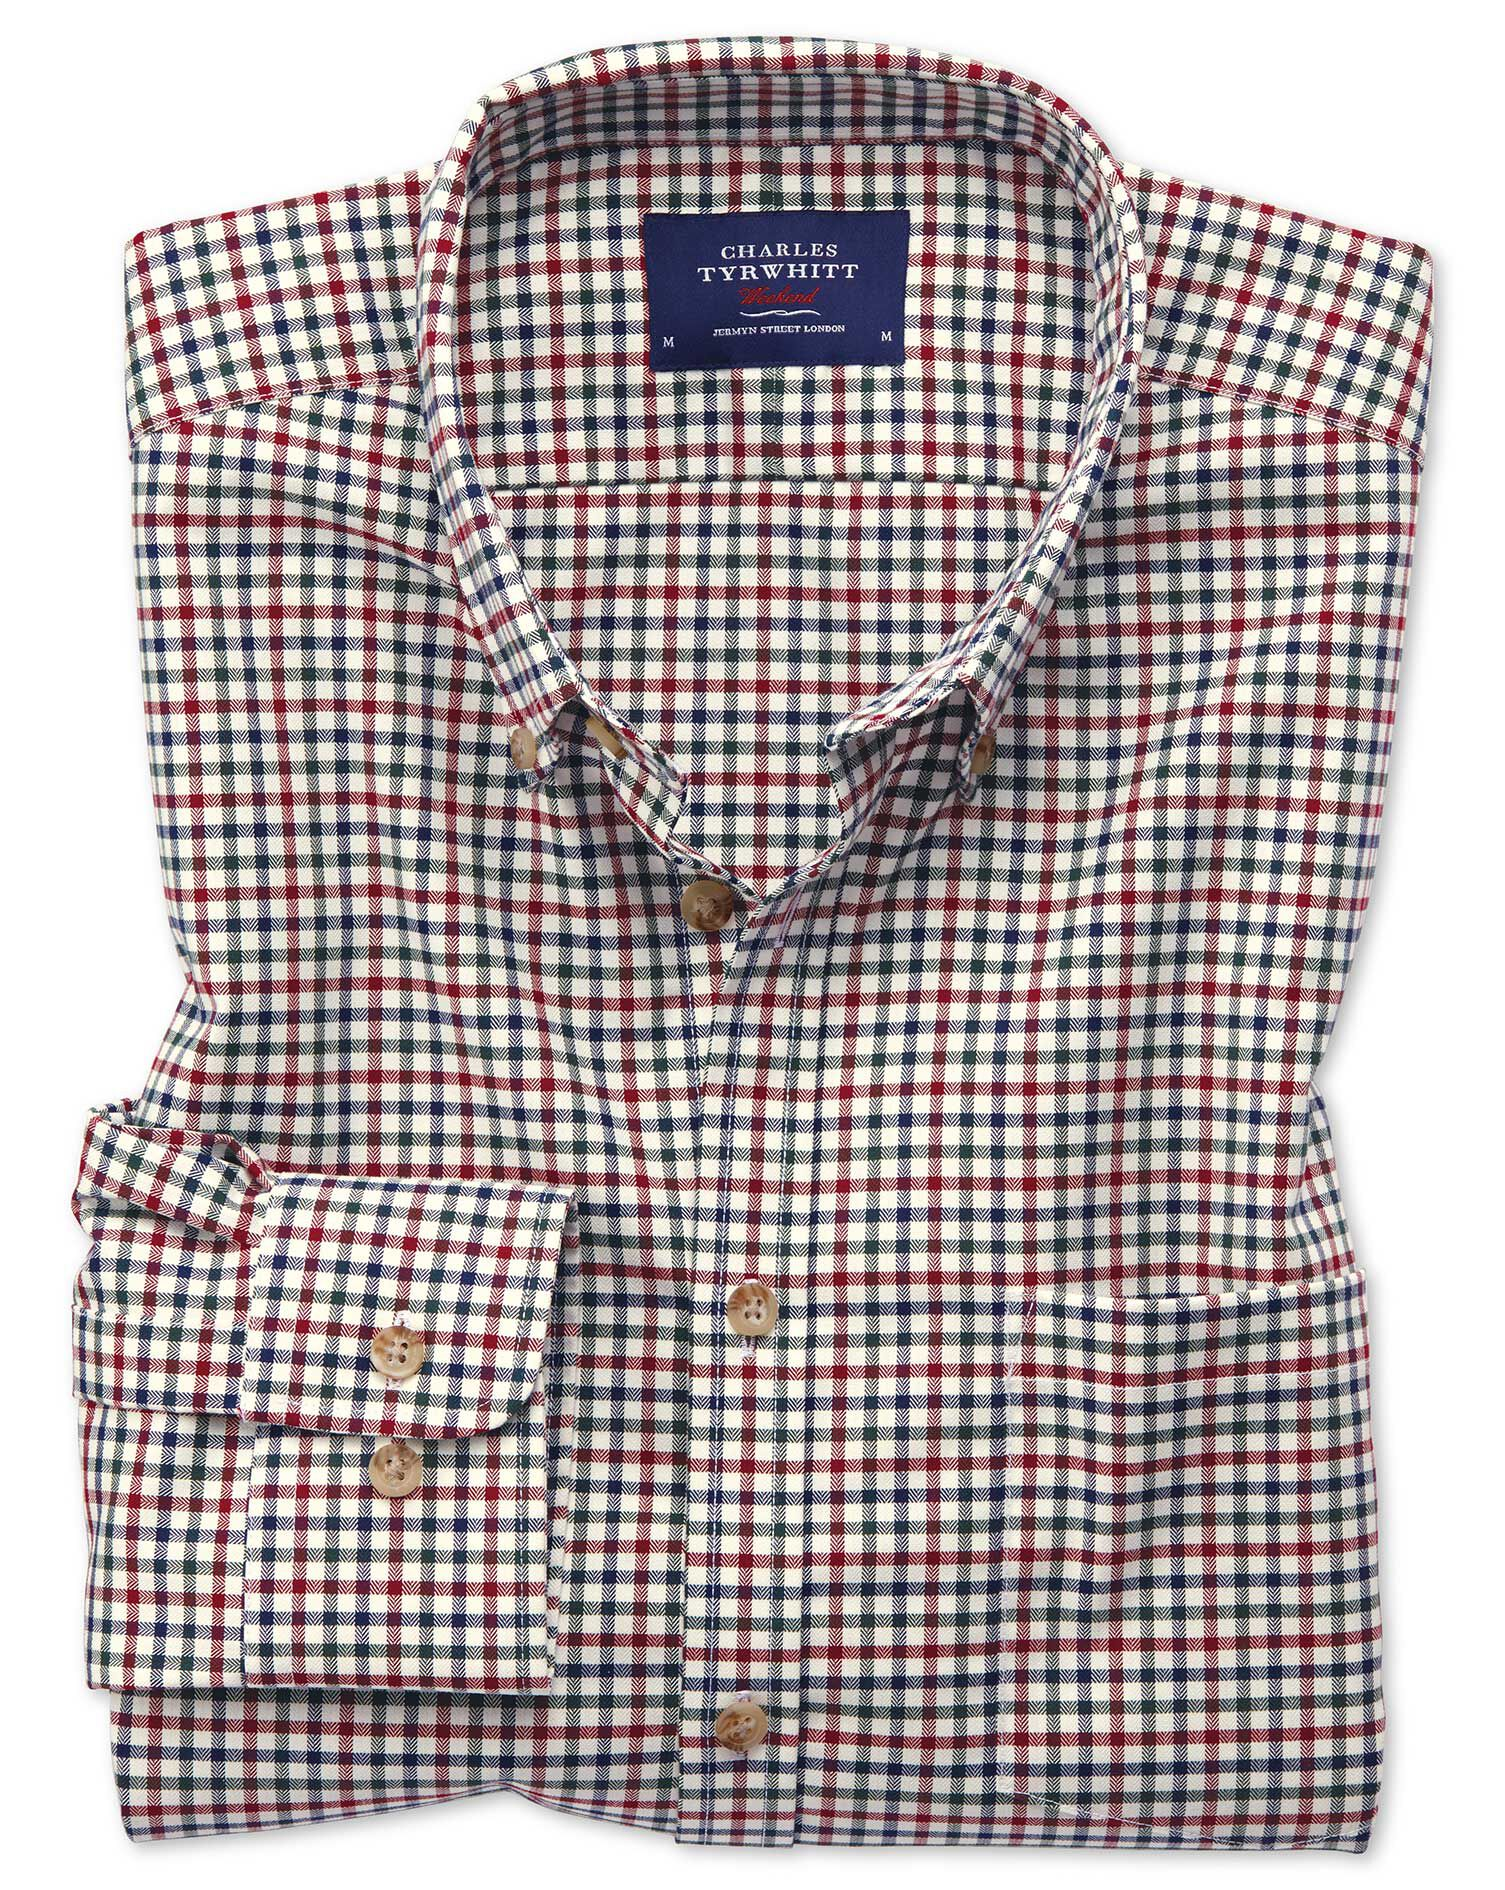 Slim Fit Button-Down Non-Iron Twill Multi Gingham Cotton Shirt Single Cuff Size XXL by Charles Tyrwh